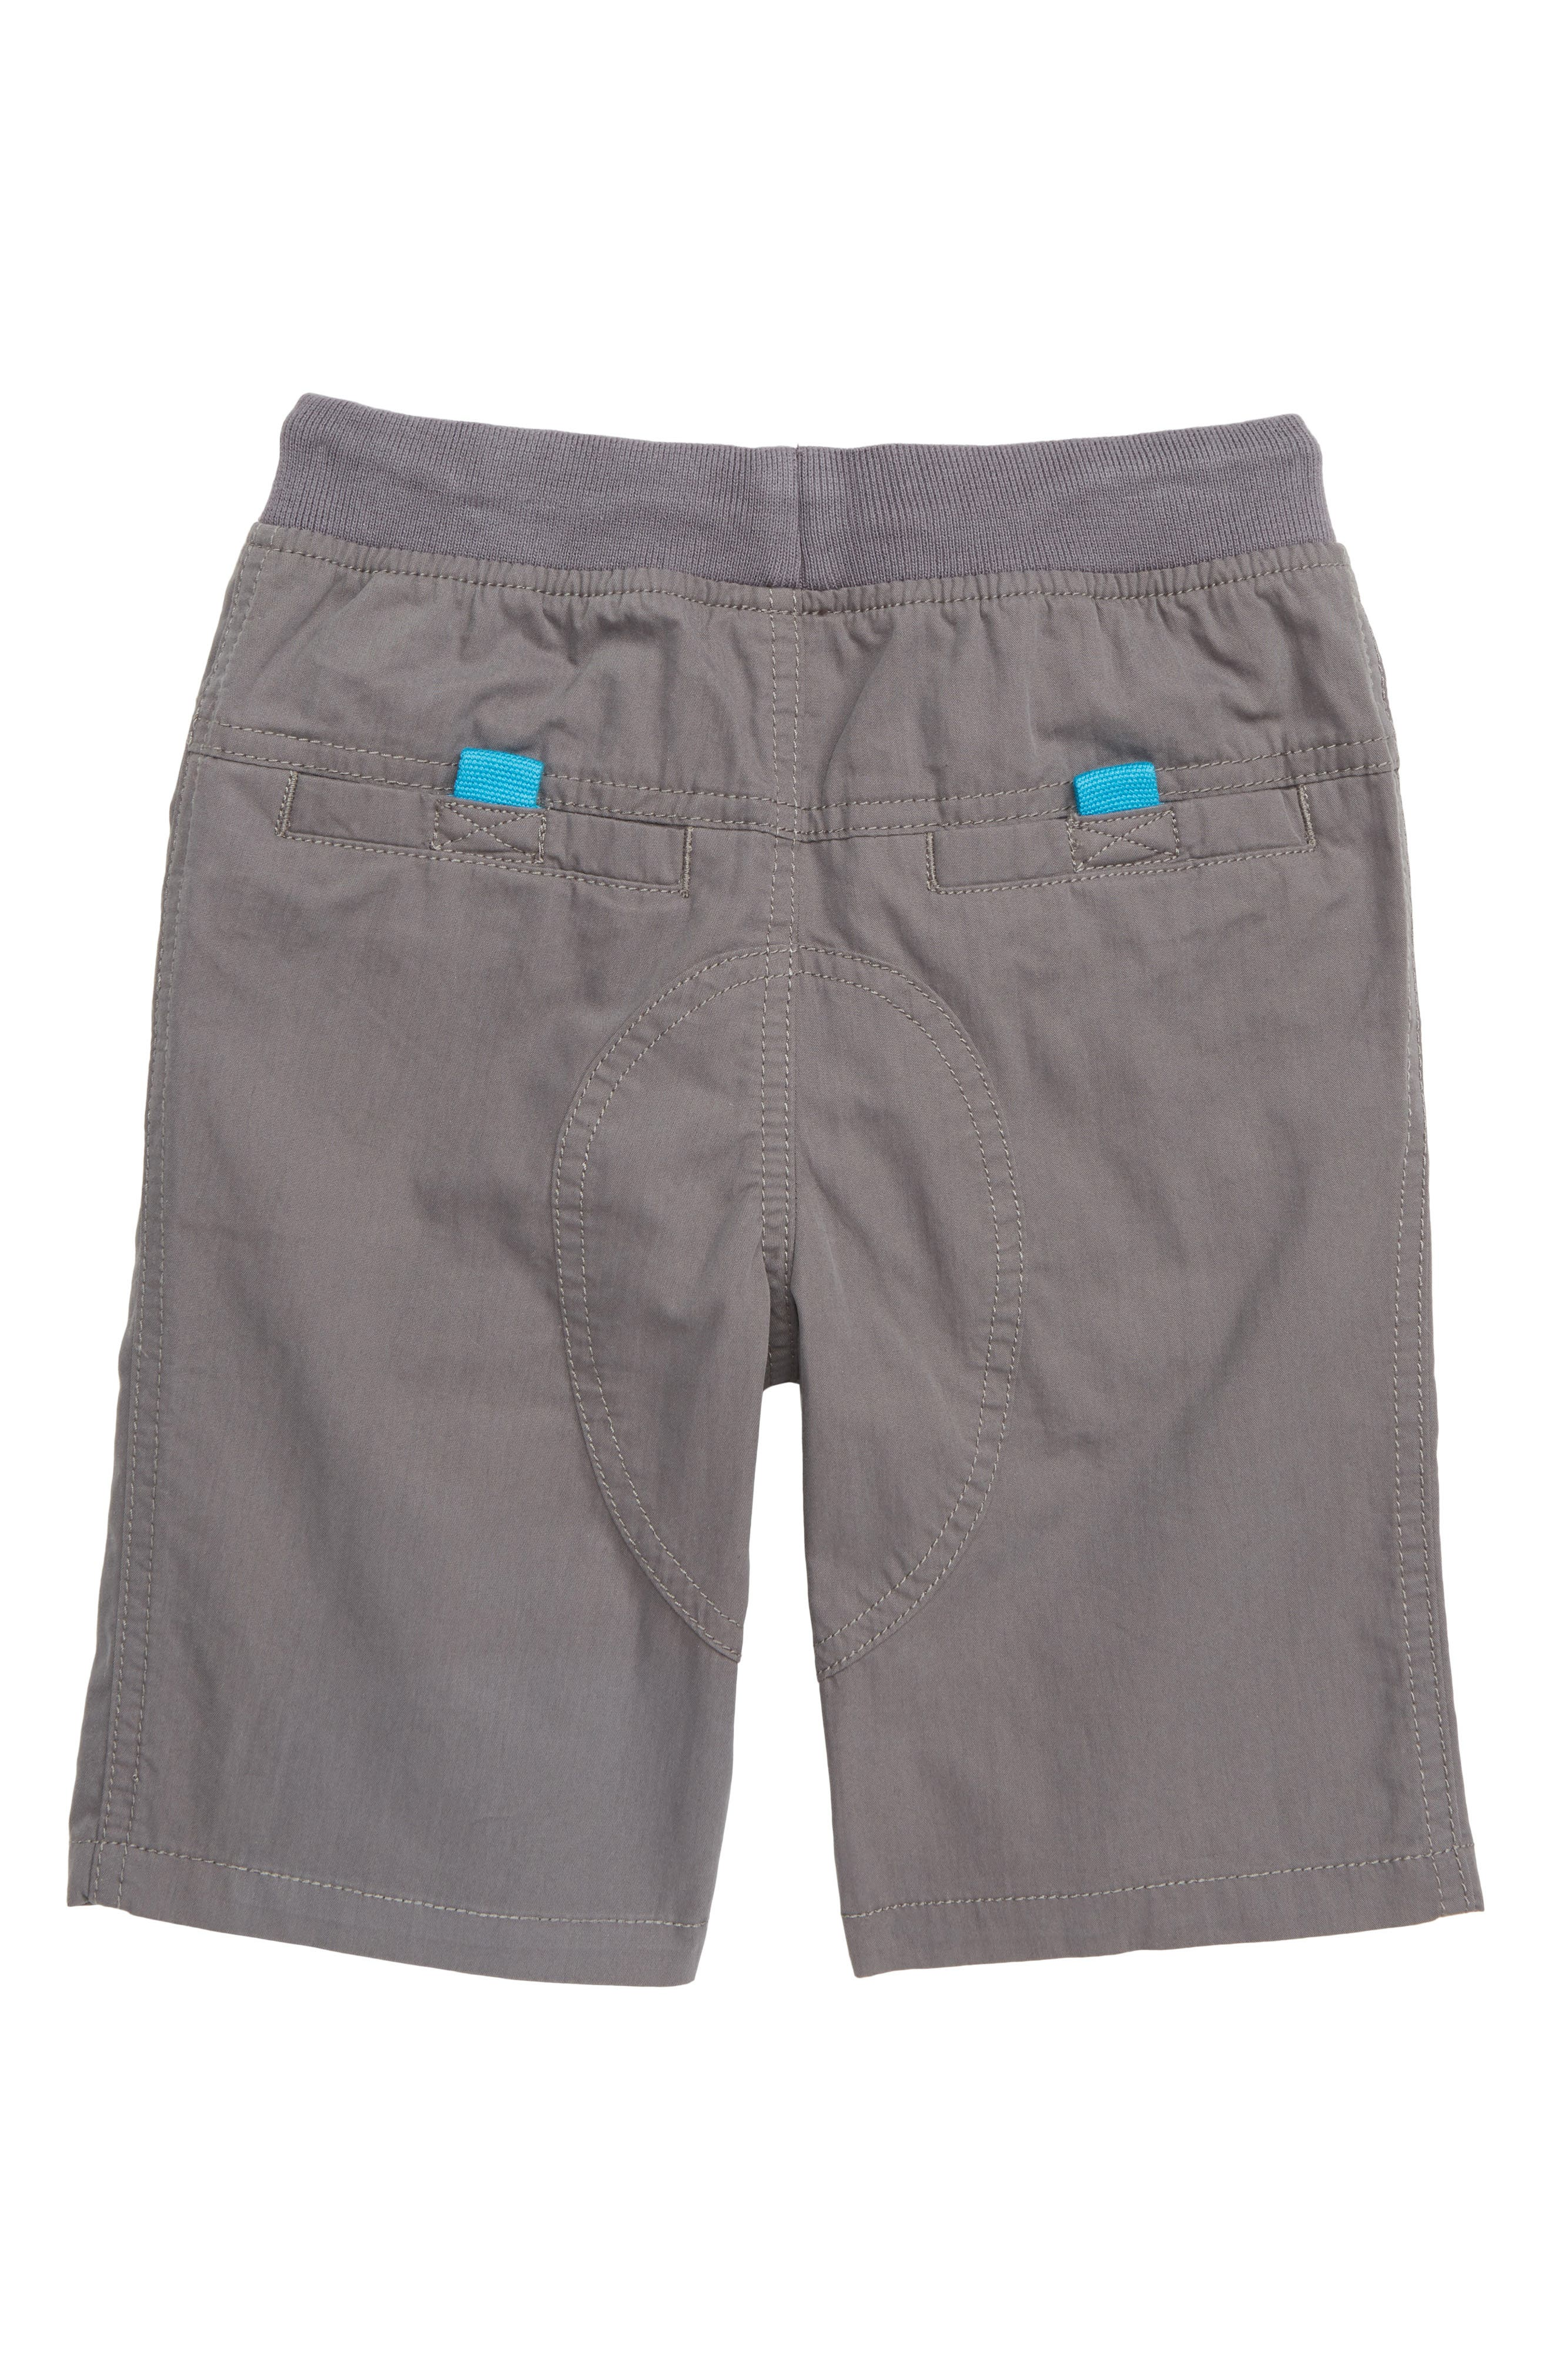 Adventure Shorts,                             Alternate thumbnail 2, color,                             PEWTER GREY